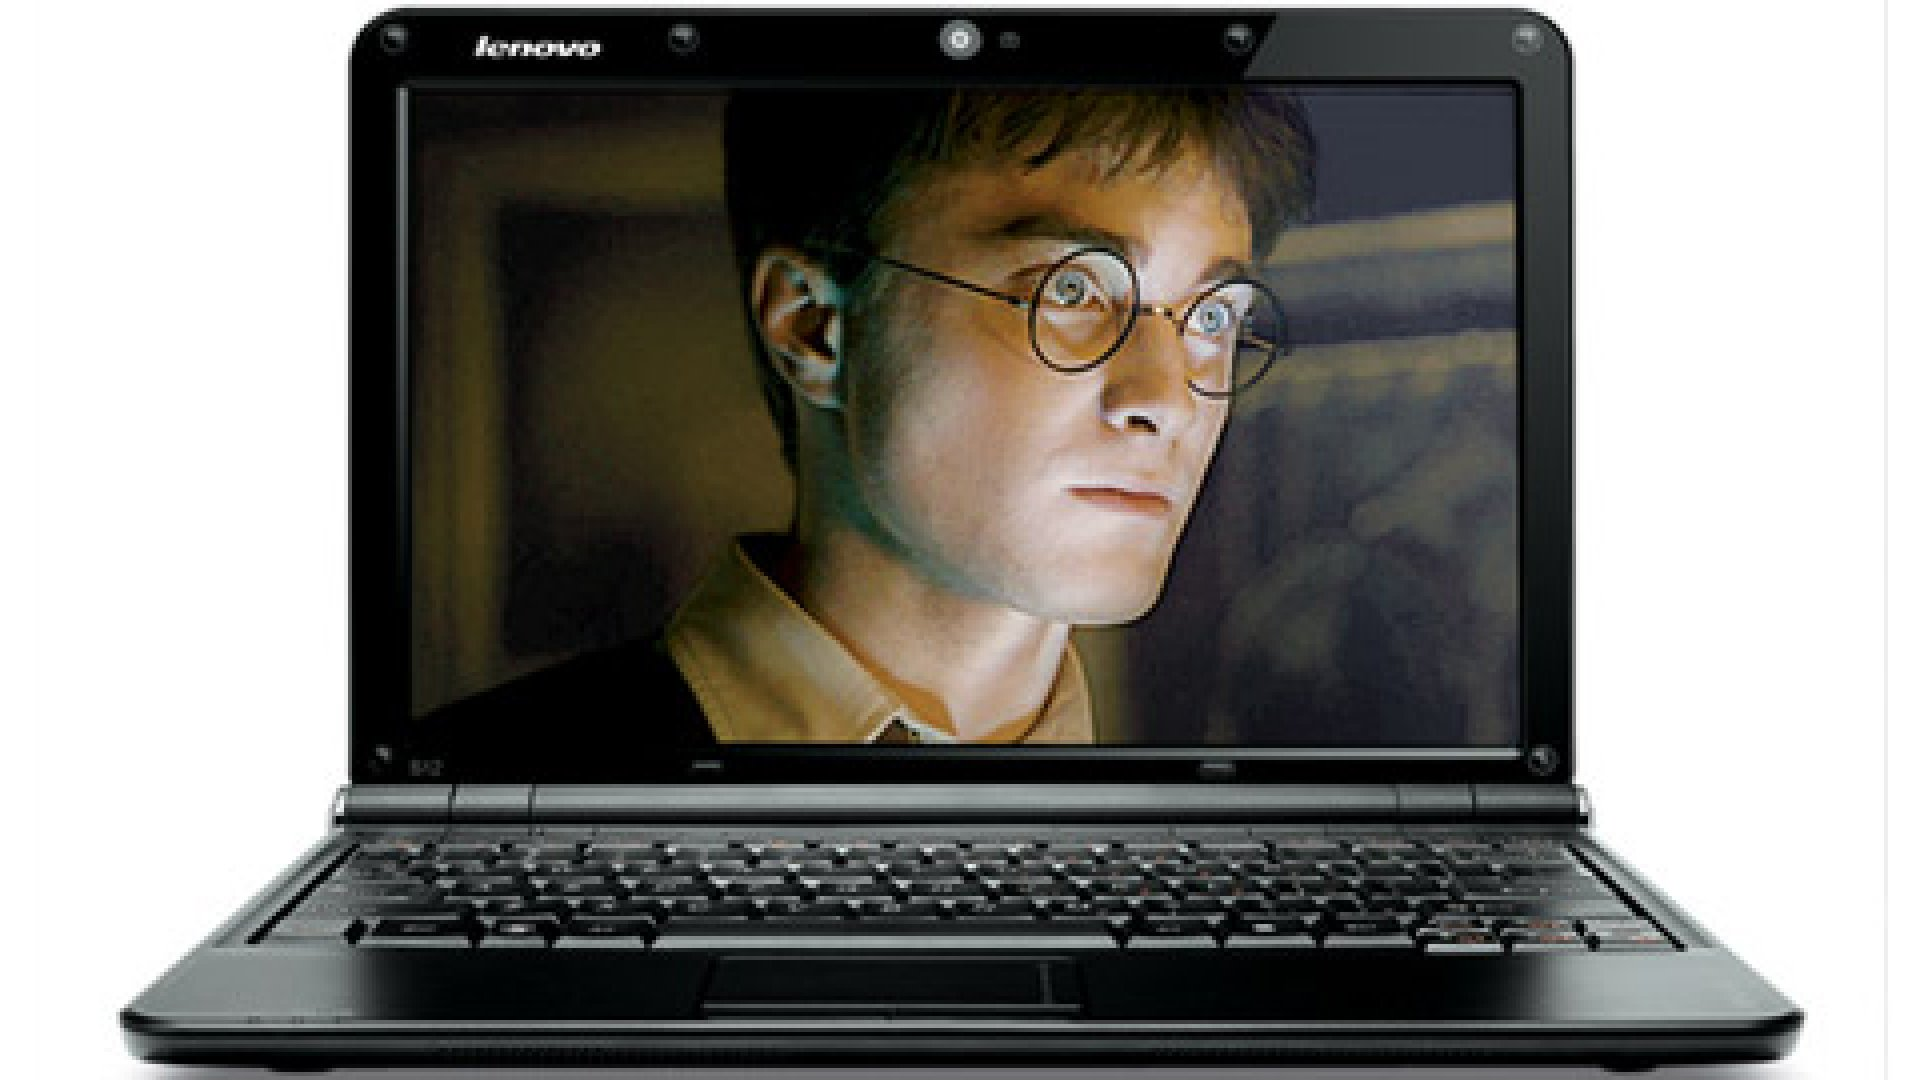 Lenovo, netbook, computer, harry potter